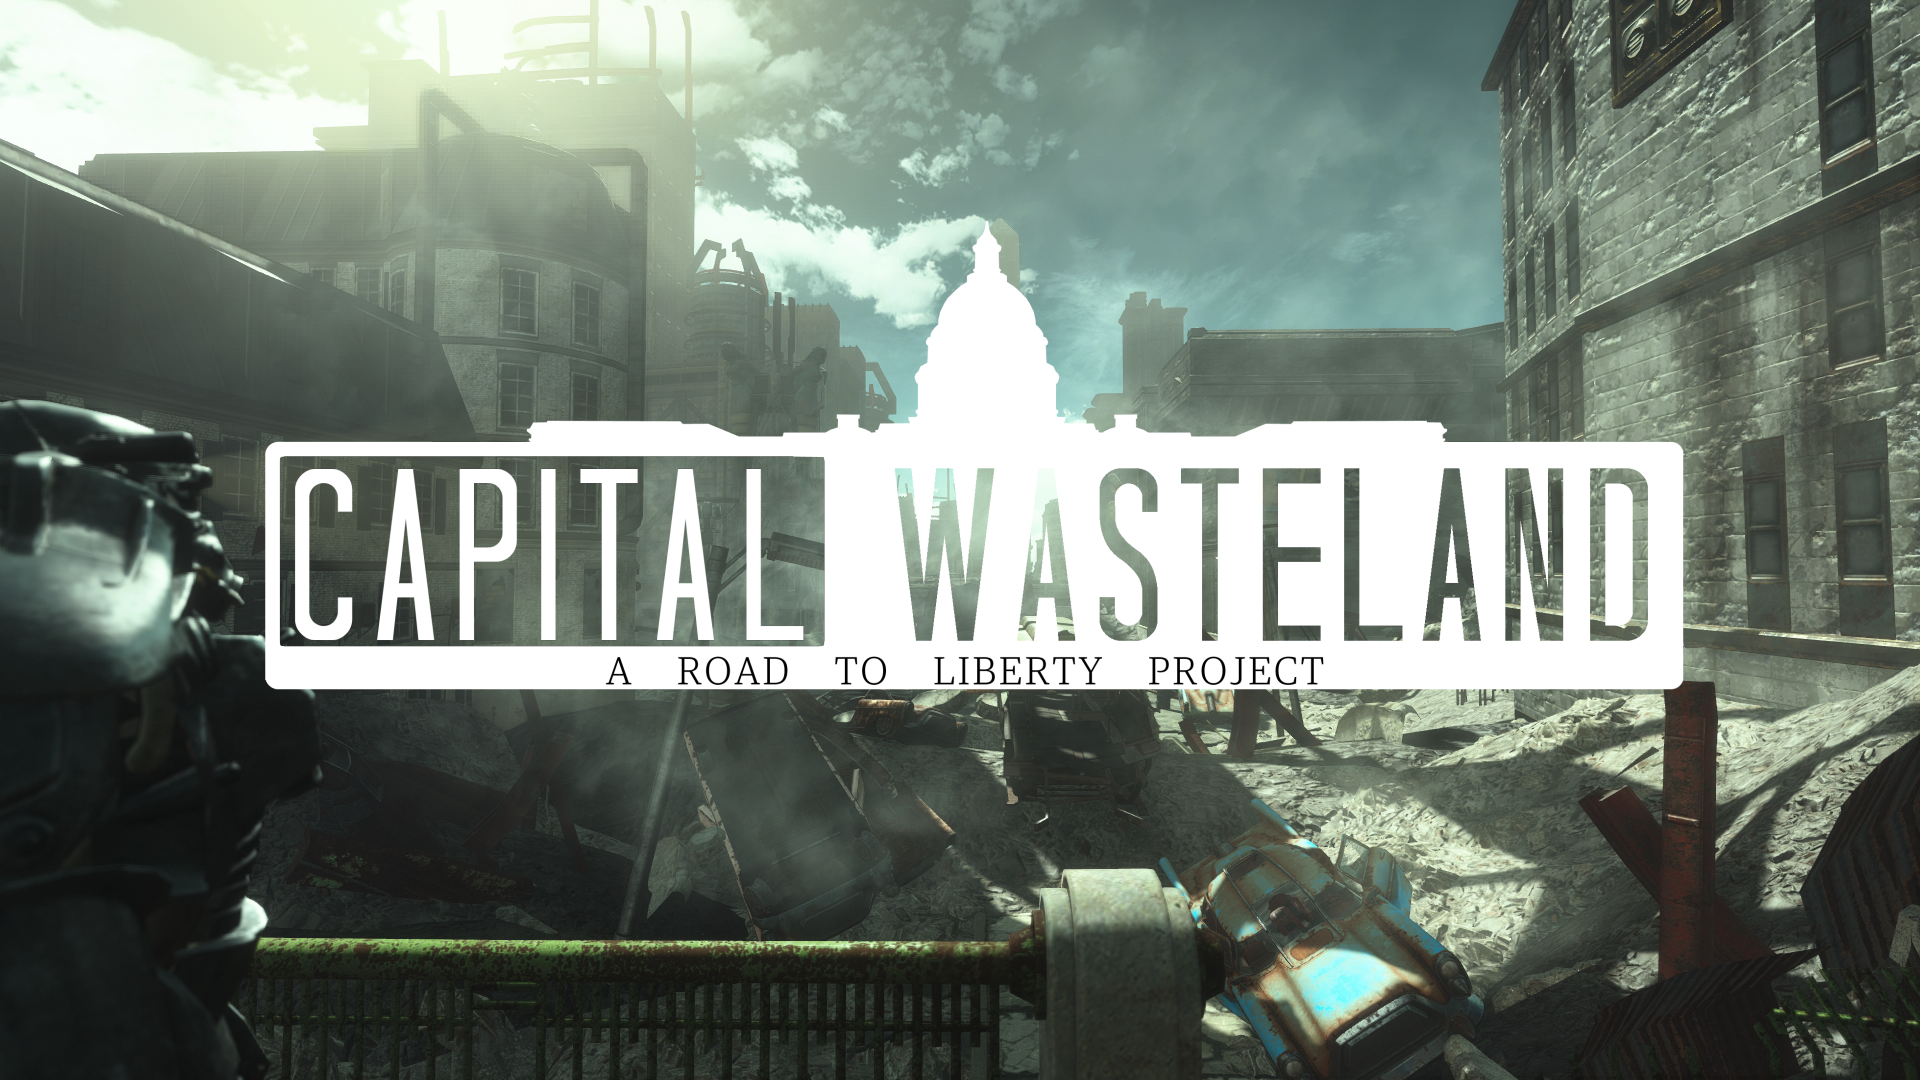 Fallout 4 Capital Wasteland Mod Is Back In Development